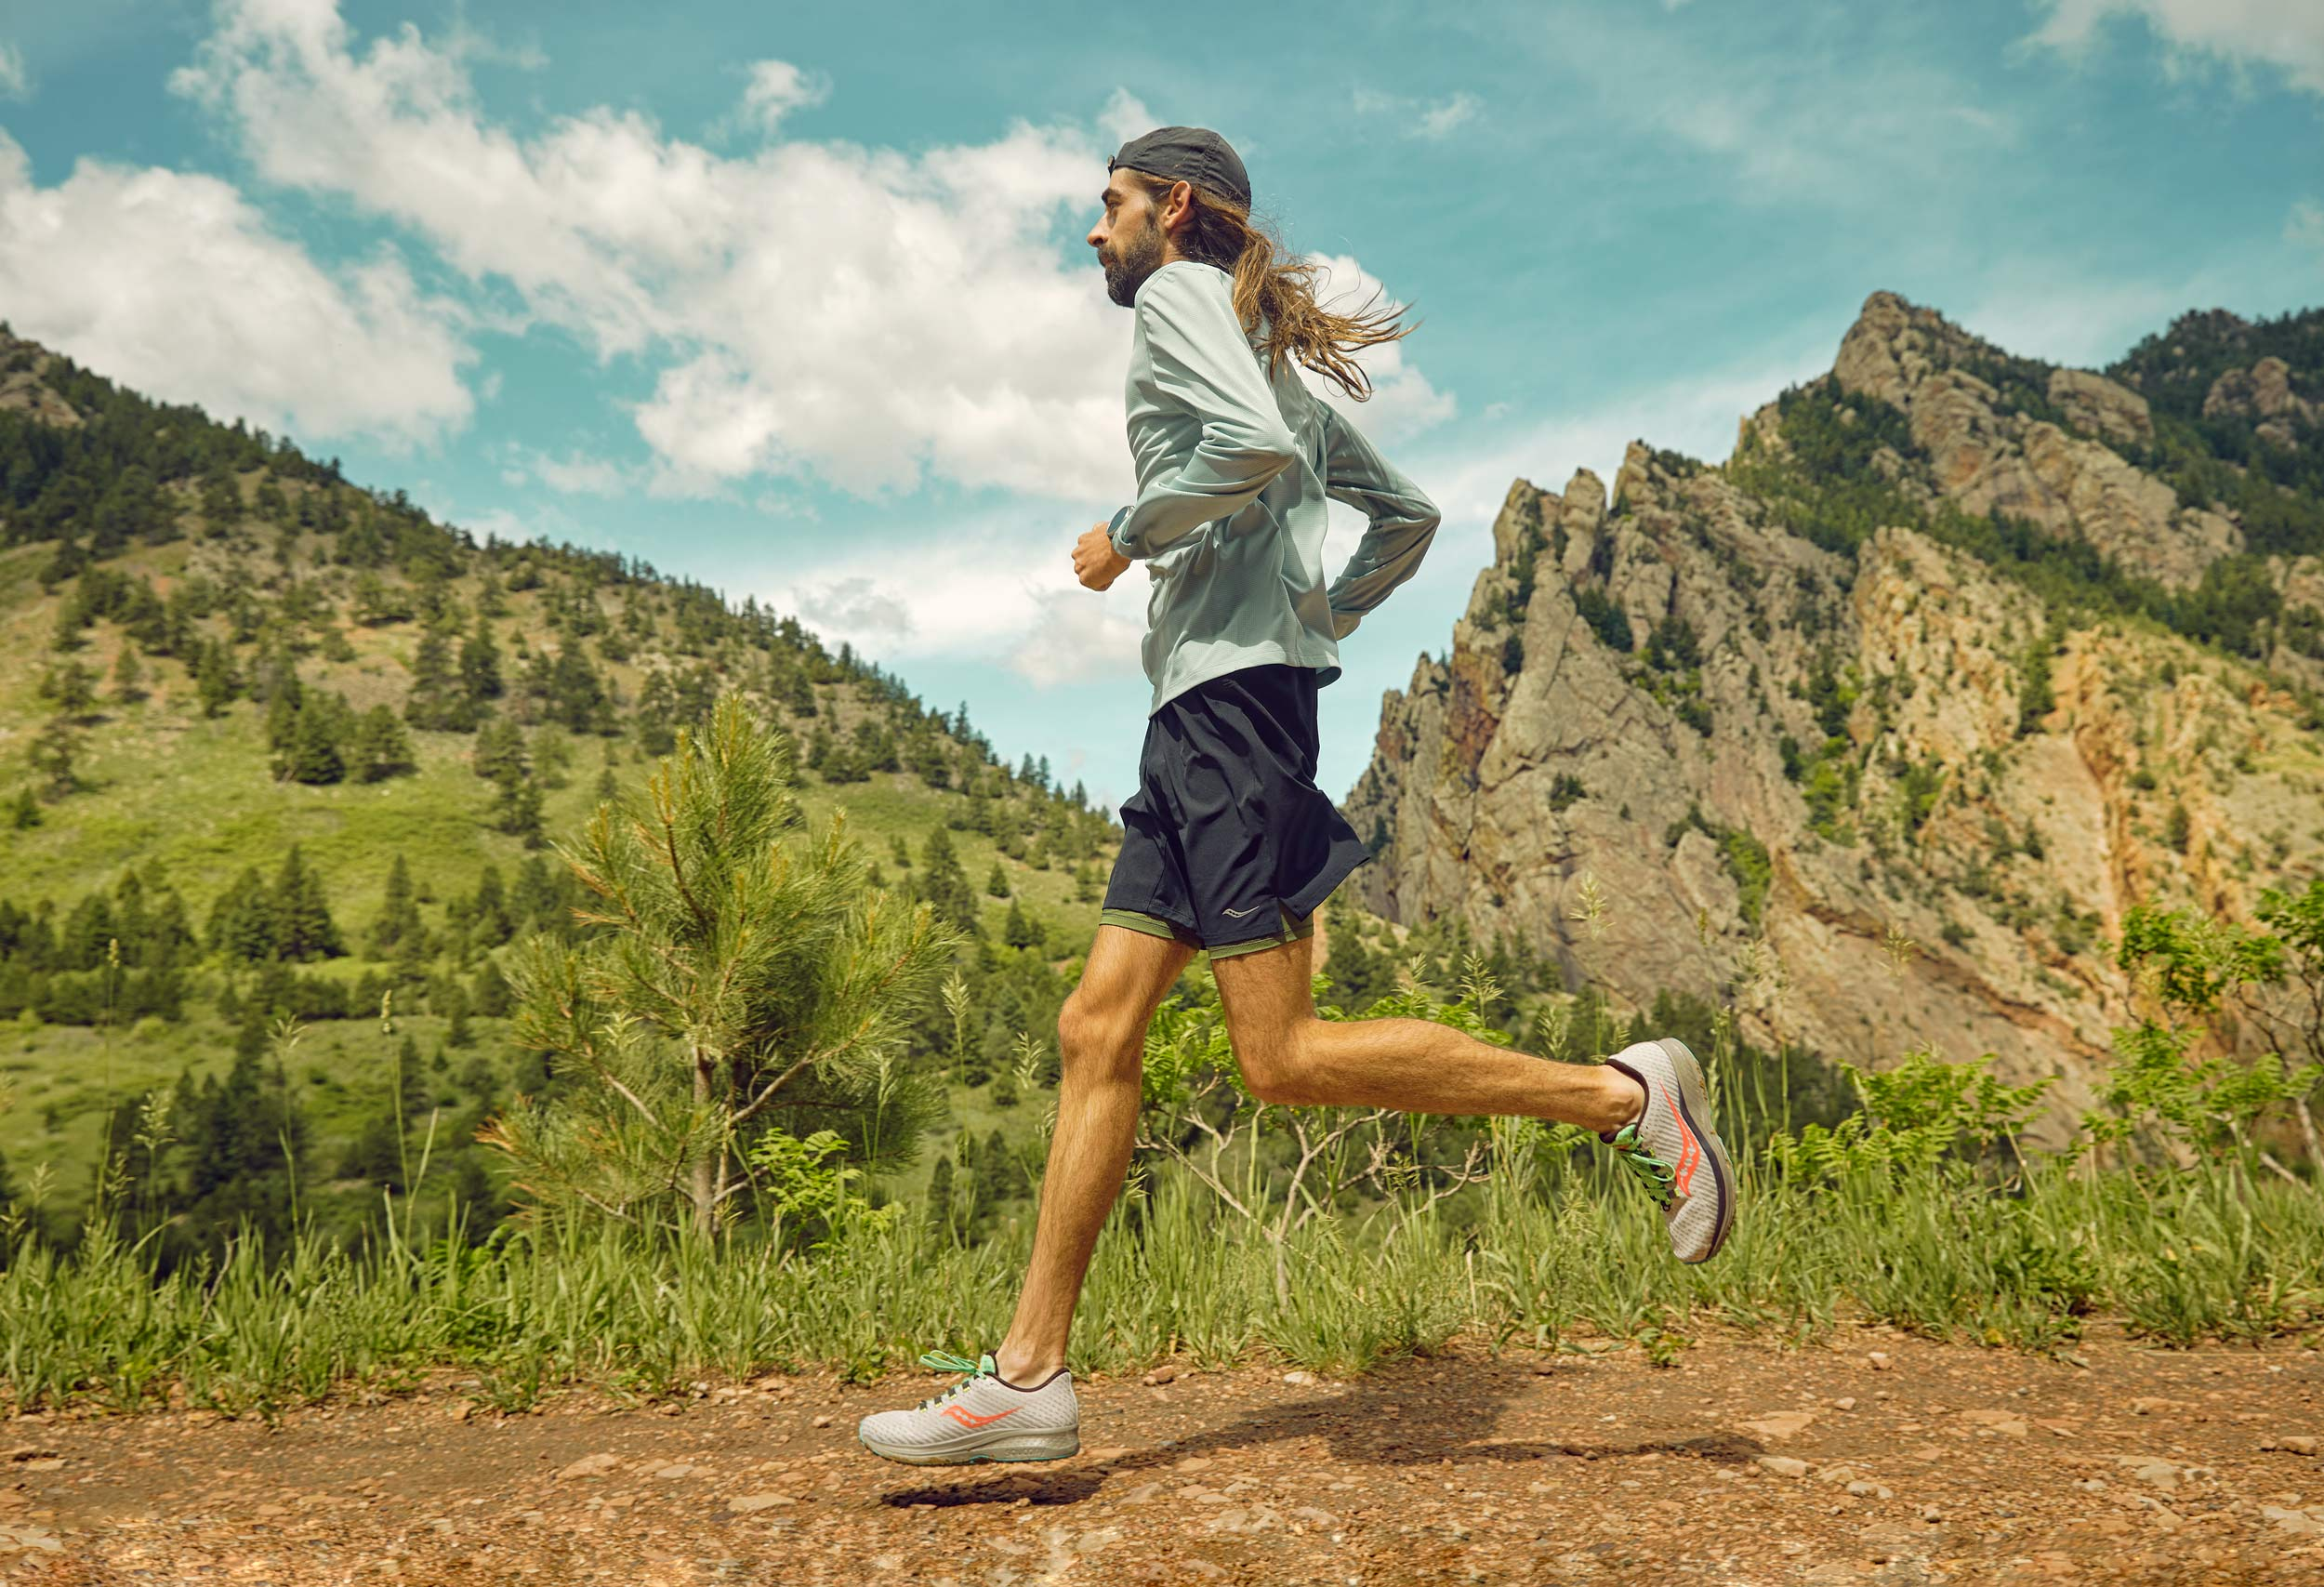 060920_maguire_saucony_trail_canyonTR_0930